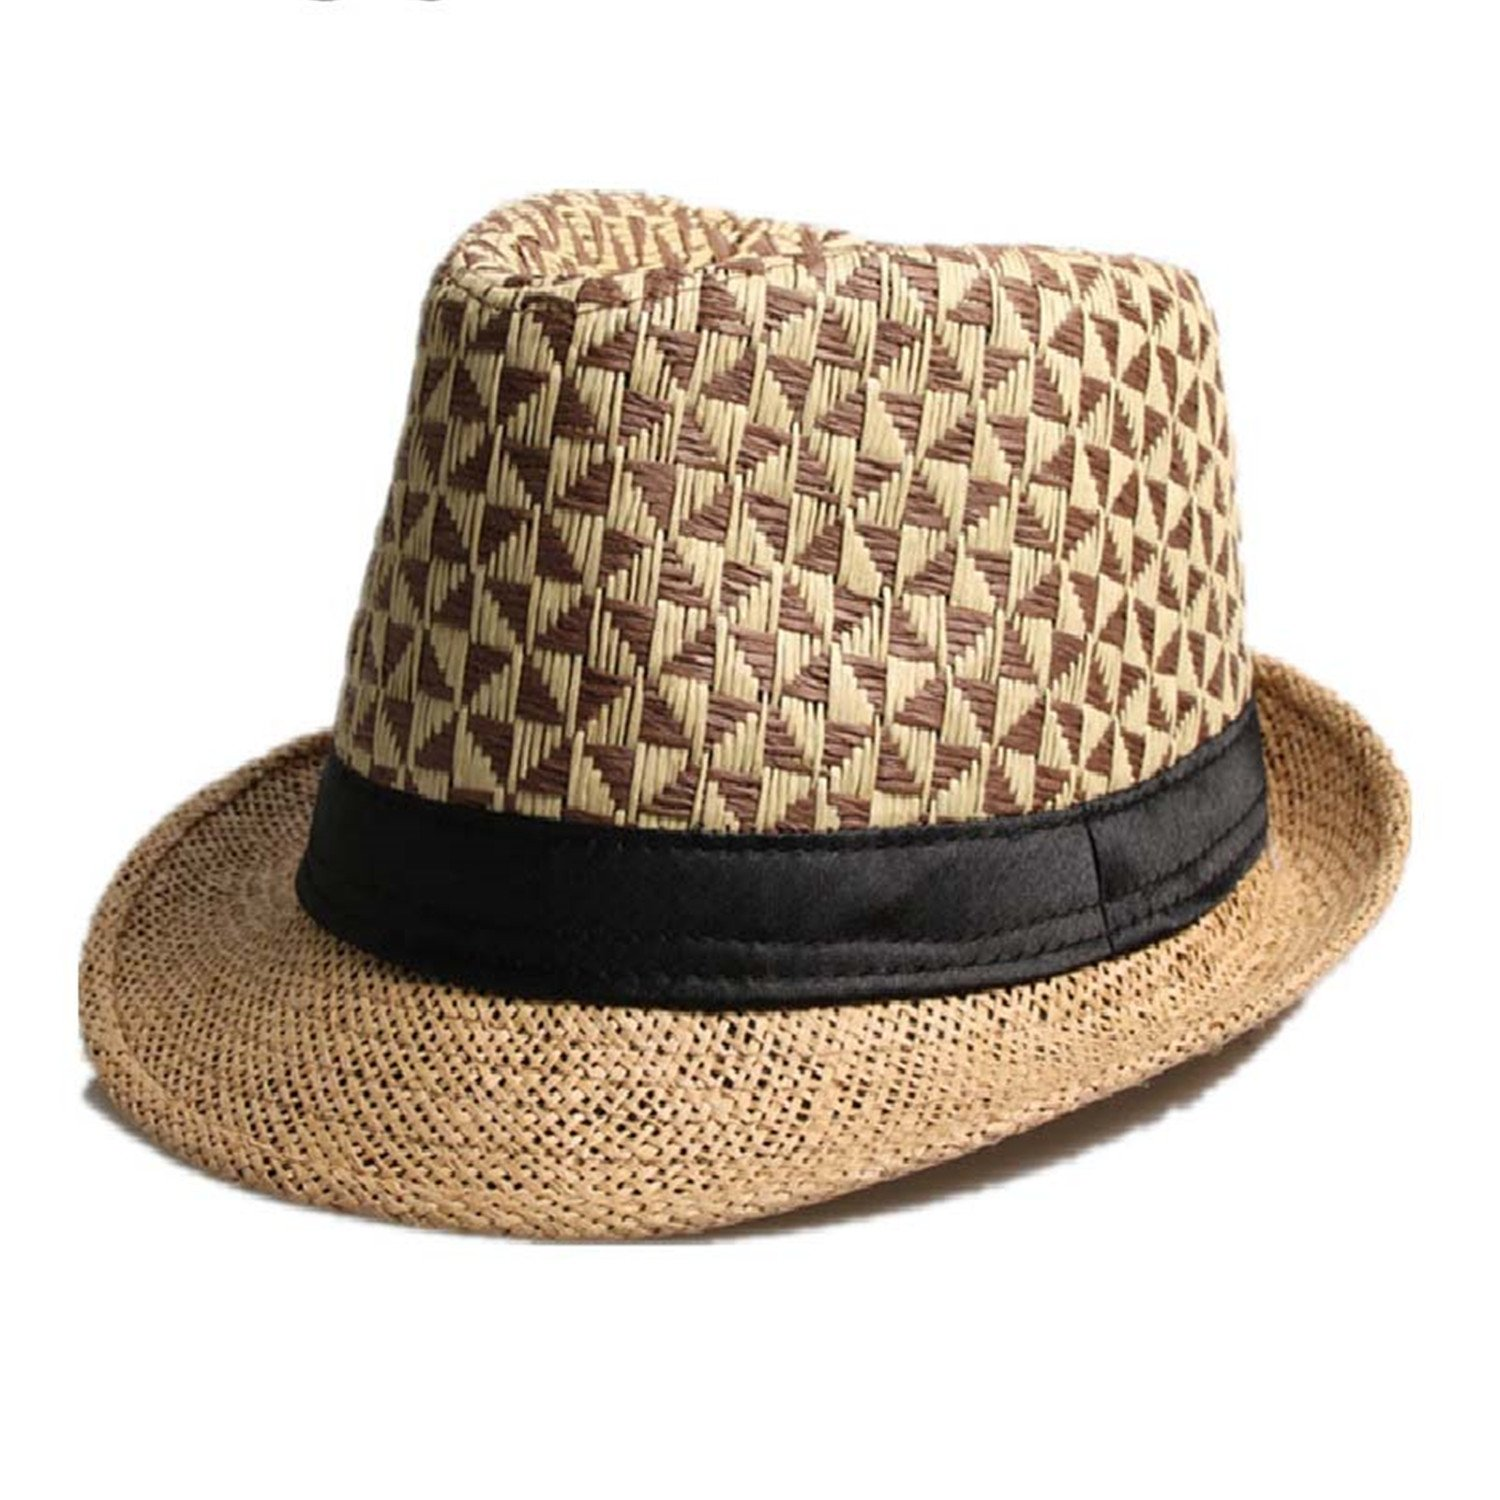 4e2c307f6a95a Trendy Fashion Summer Straw Man and Women s Sun Hats Fedora Trilby Gangster Cap  Summer Beach Women Sun Straw Panama Hat with 3 at Amazon Women s Clothing  ...